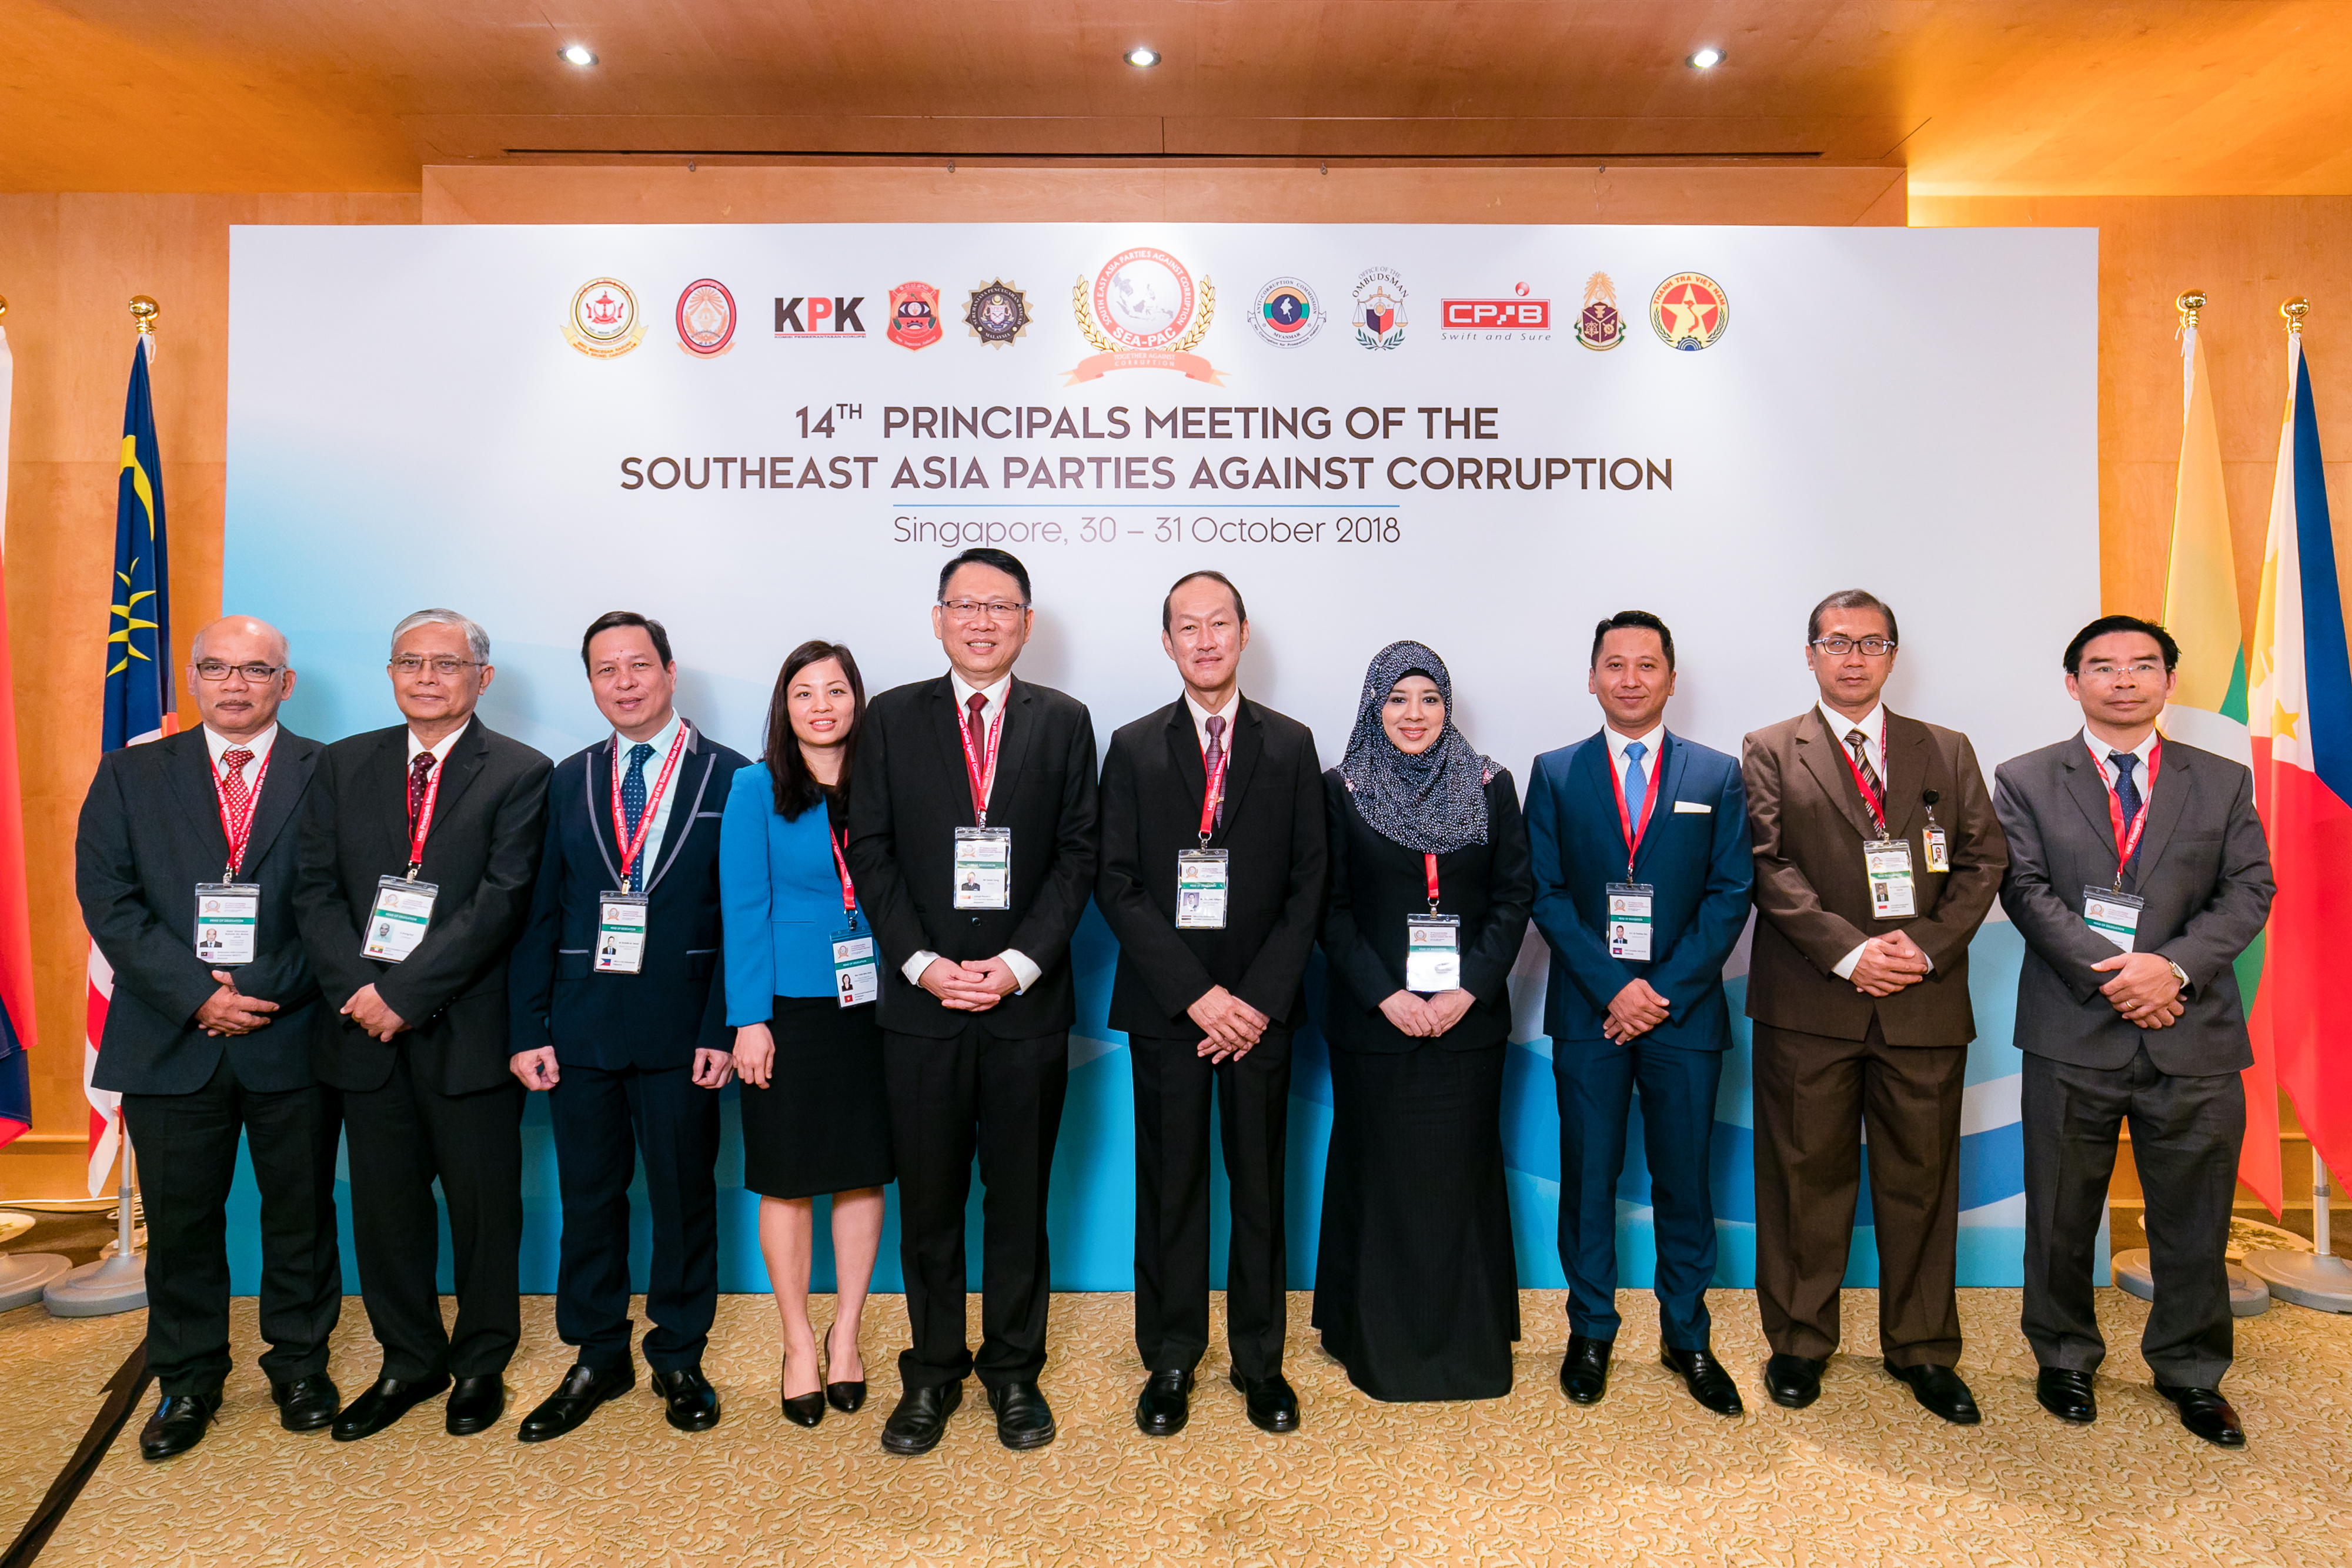 2018 10 30  - 14th Principals Meeting of the Southeast Asia Parties Against Corruption Day 1 (High Res) - 066_0